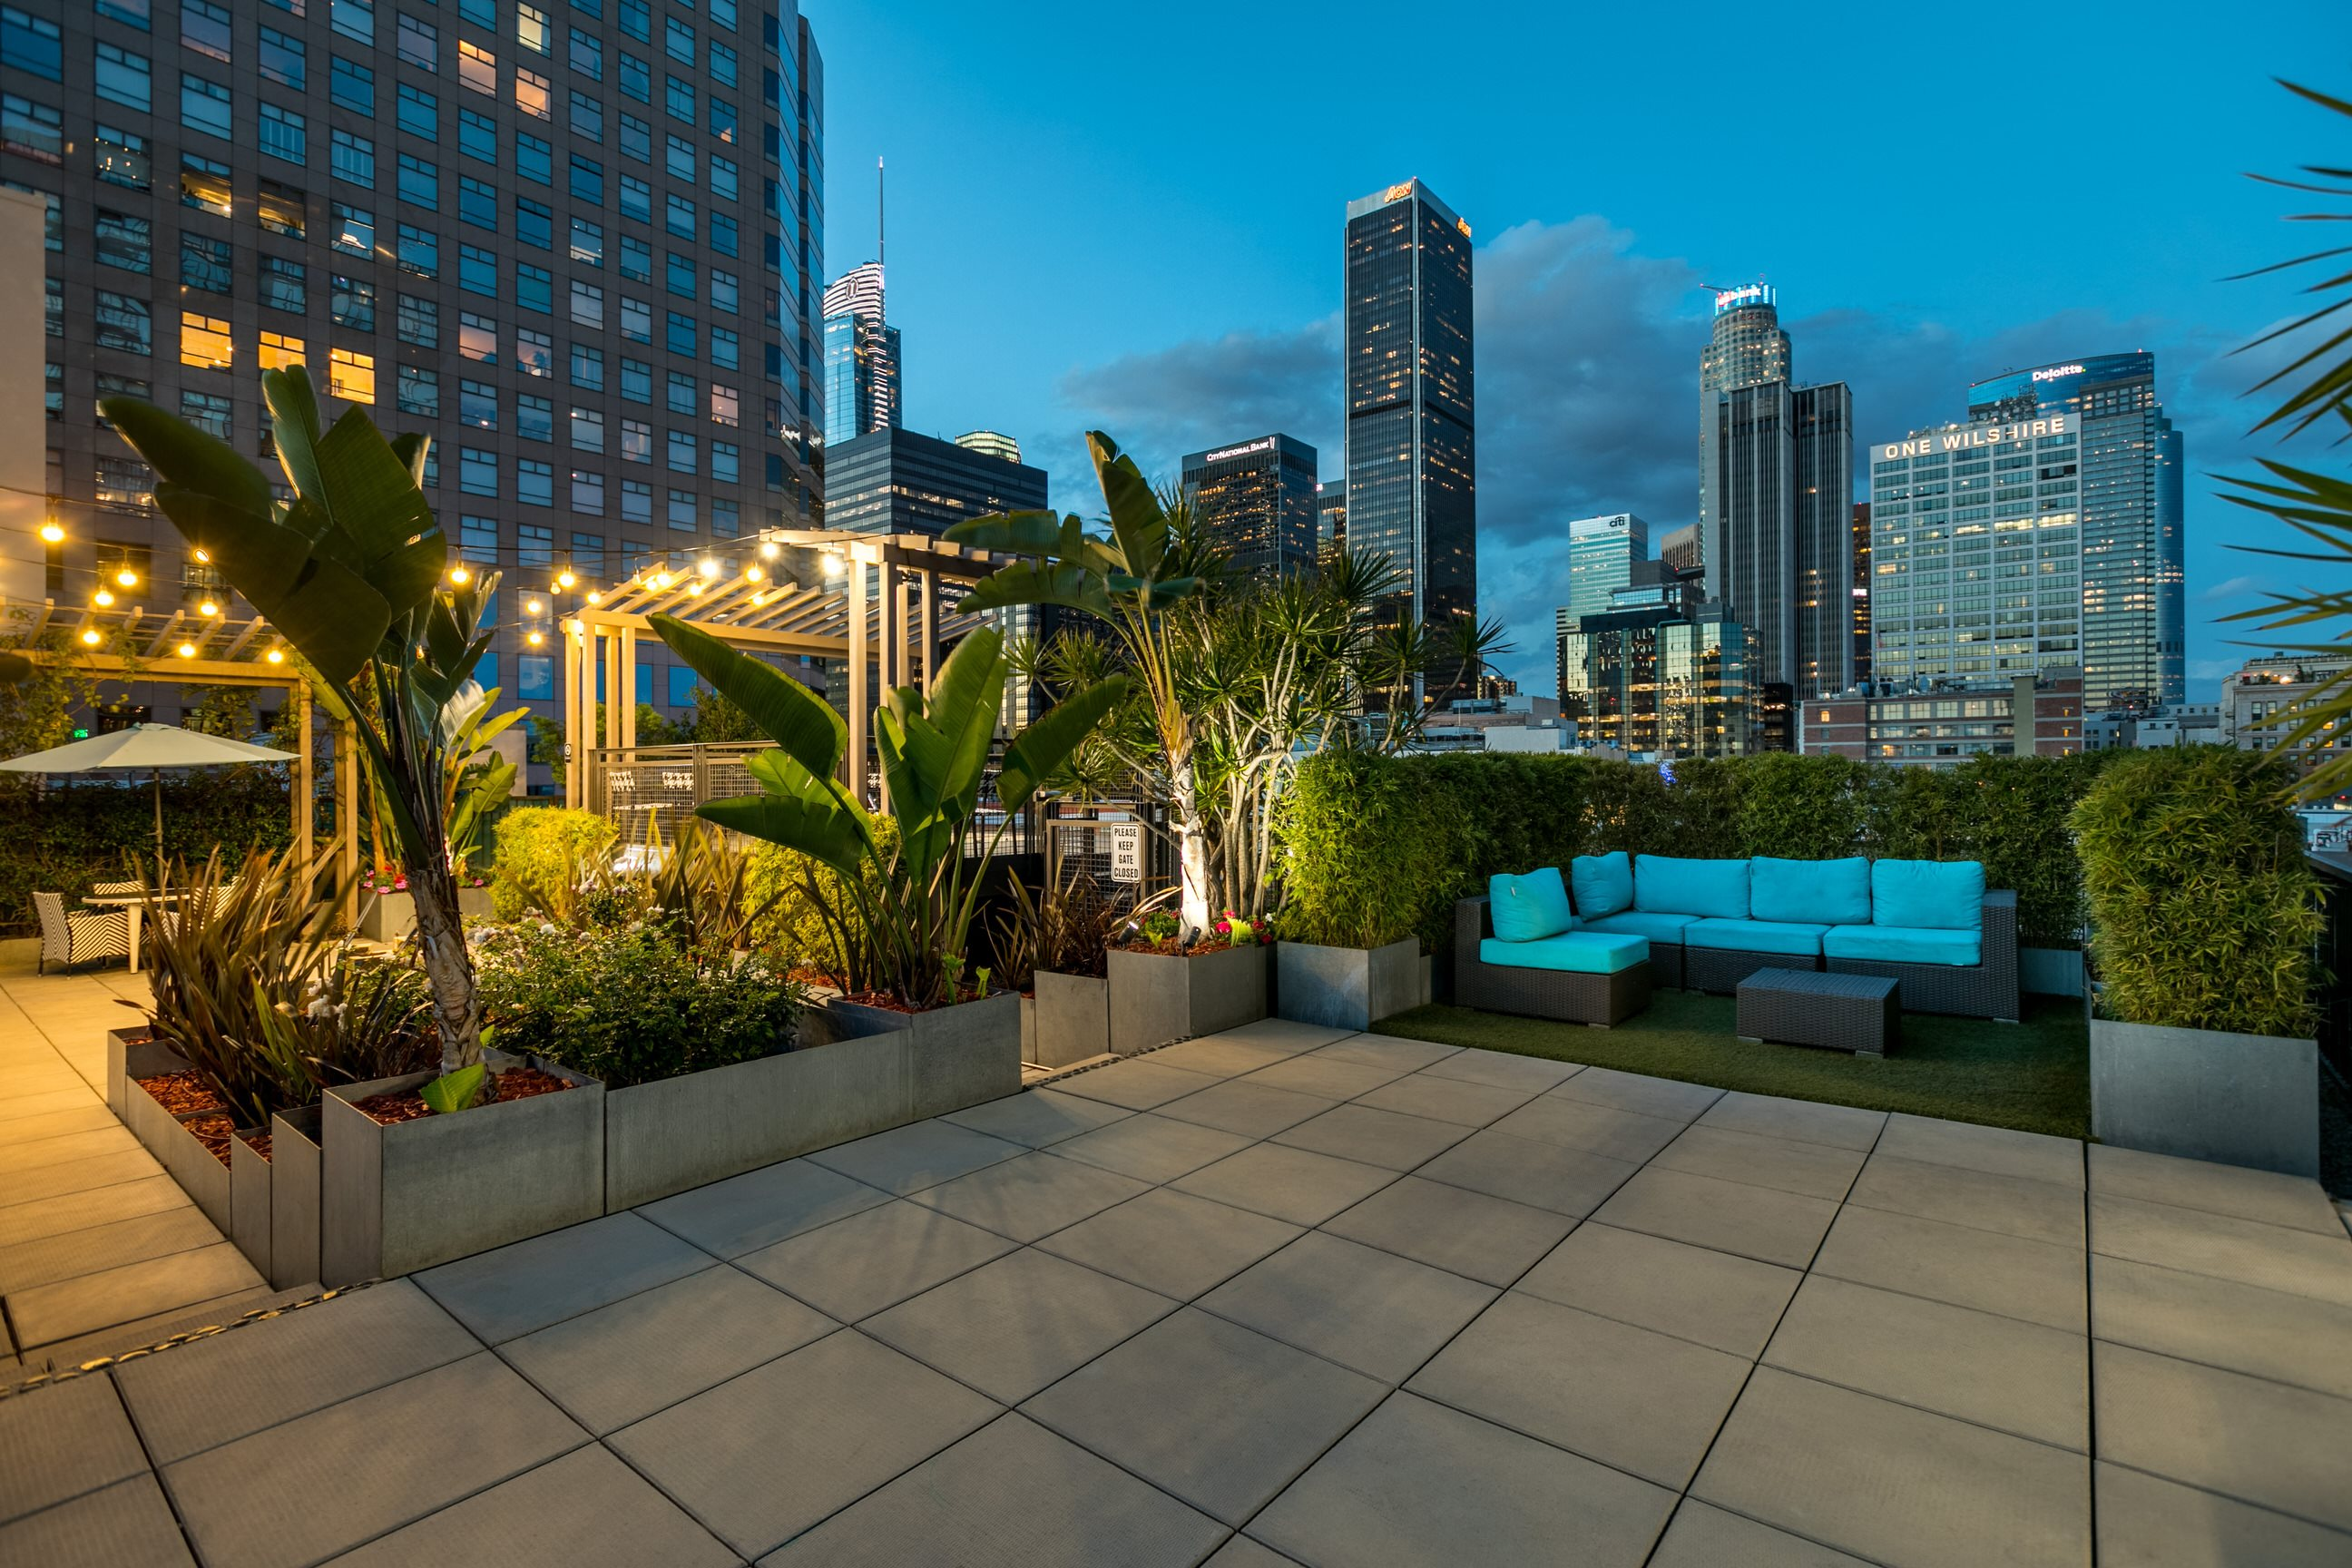 Rooftop Lounge at South Park Lofts 818 S Grand Ave, Los Angeles, CA 90017